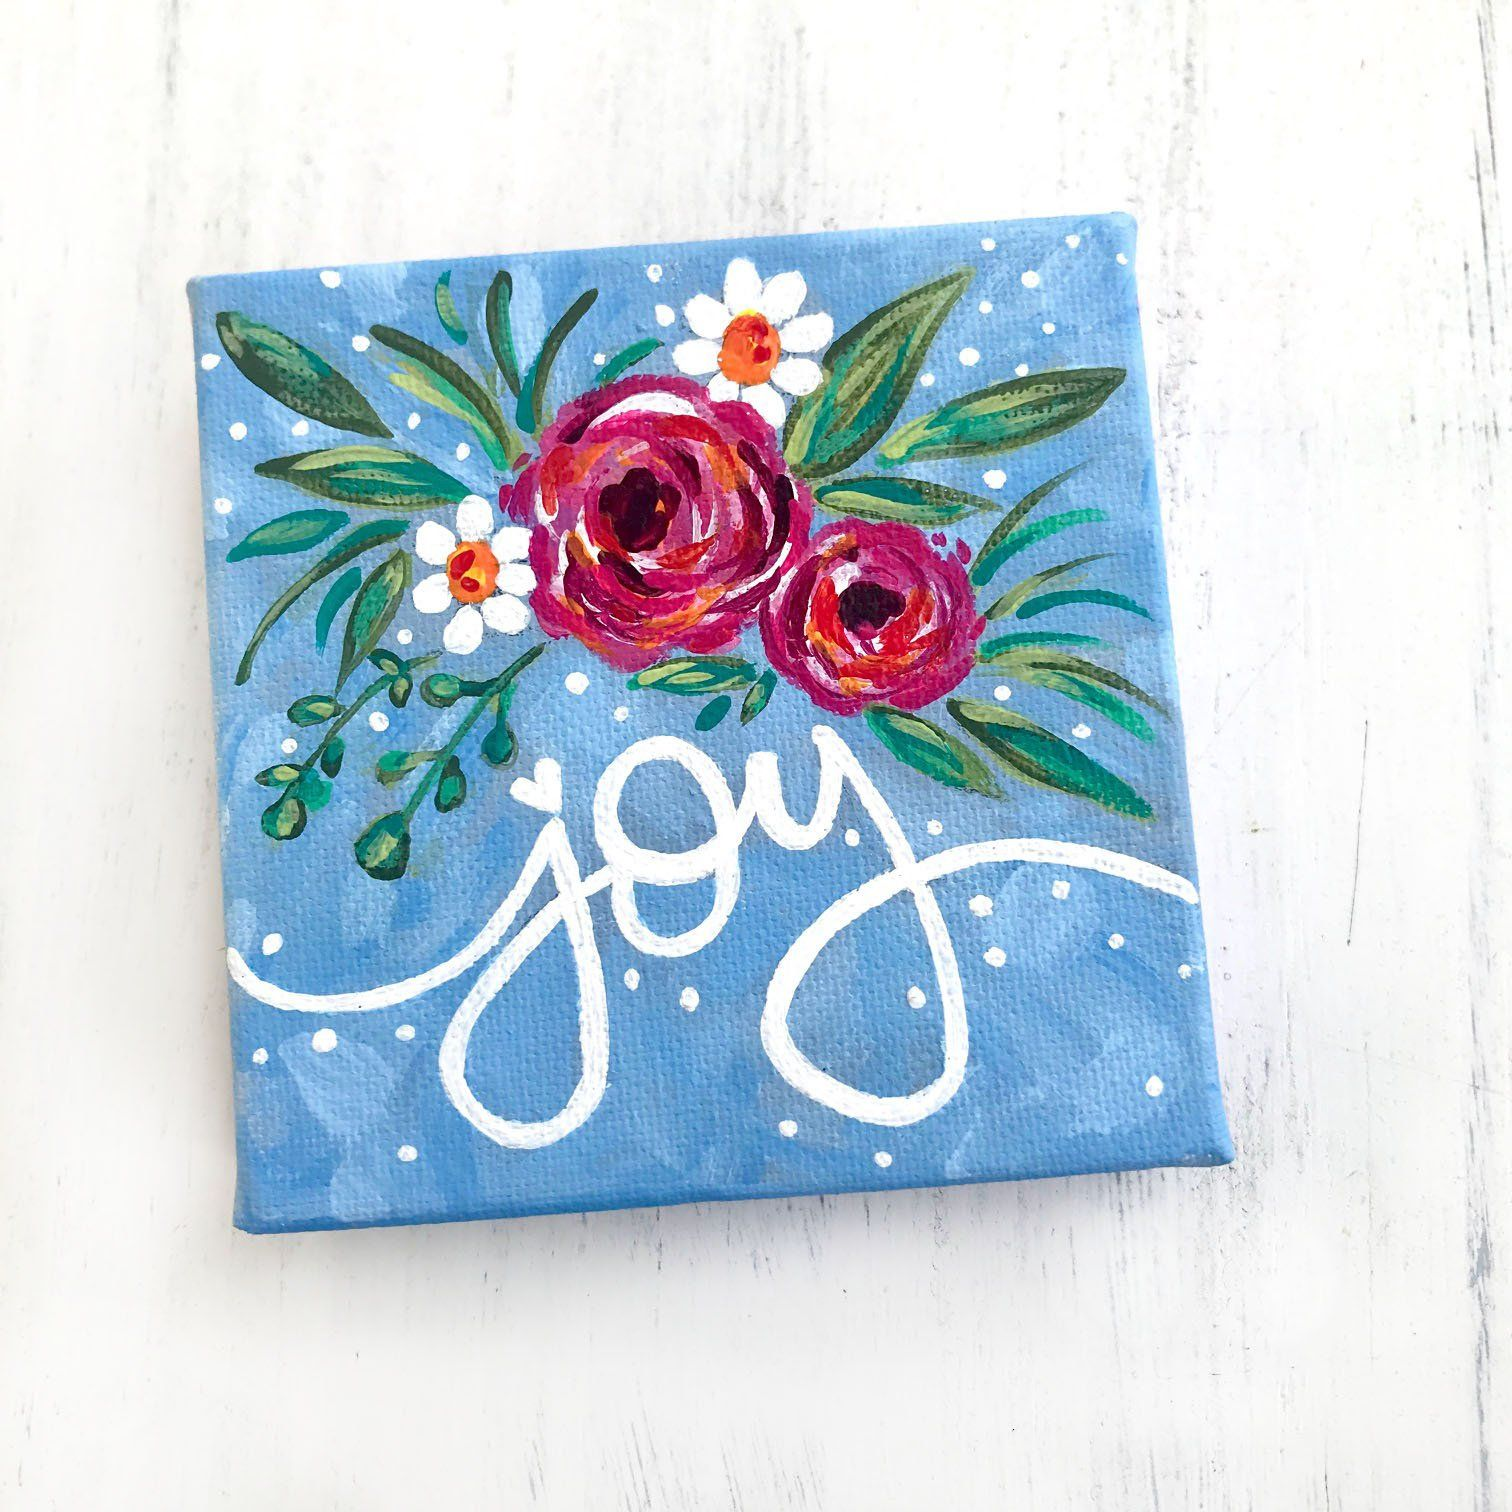 4x4 on Canvas Mini Abstract Flower Mixed Media Painting